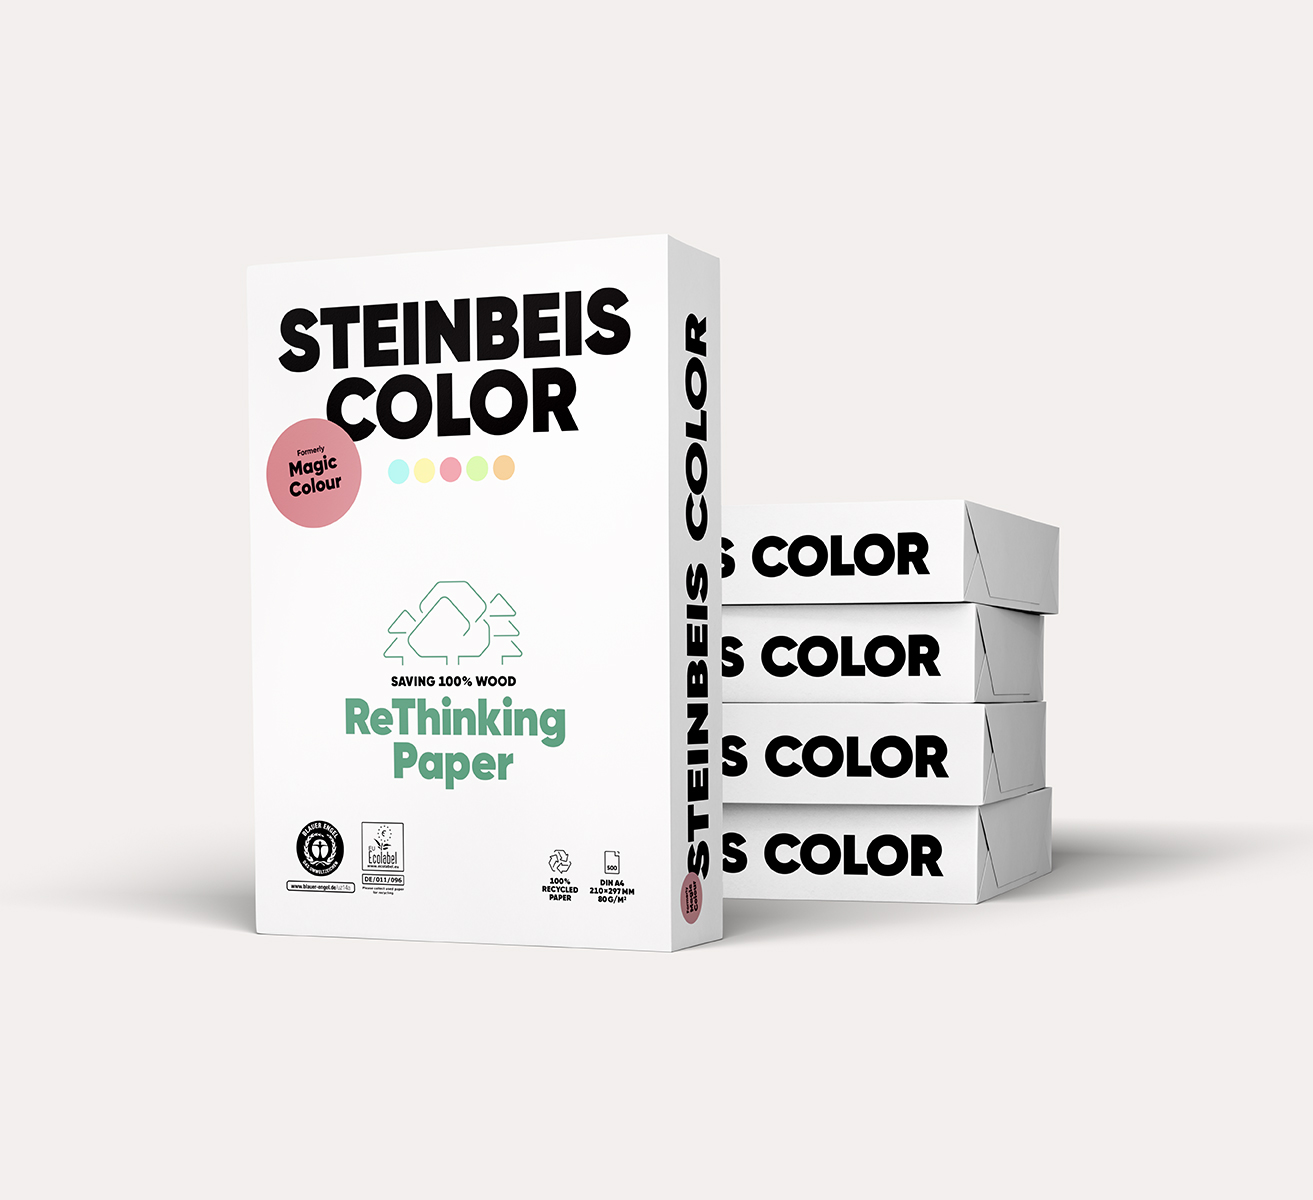 Steinbeis Color